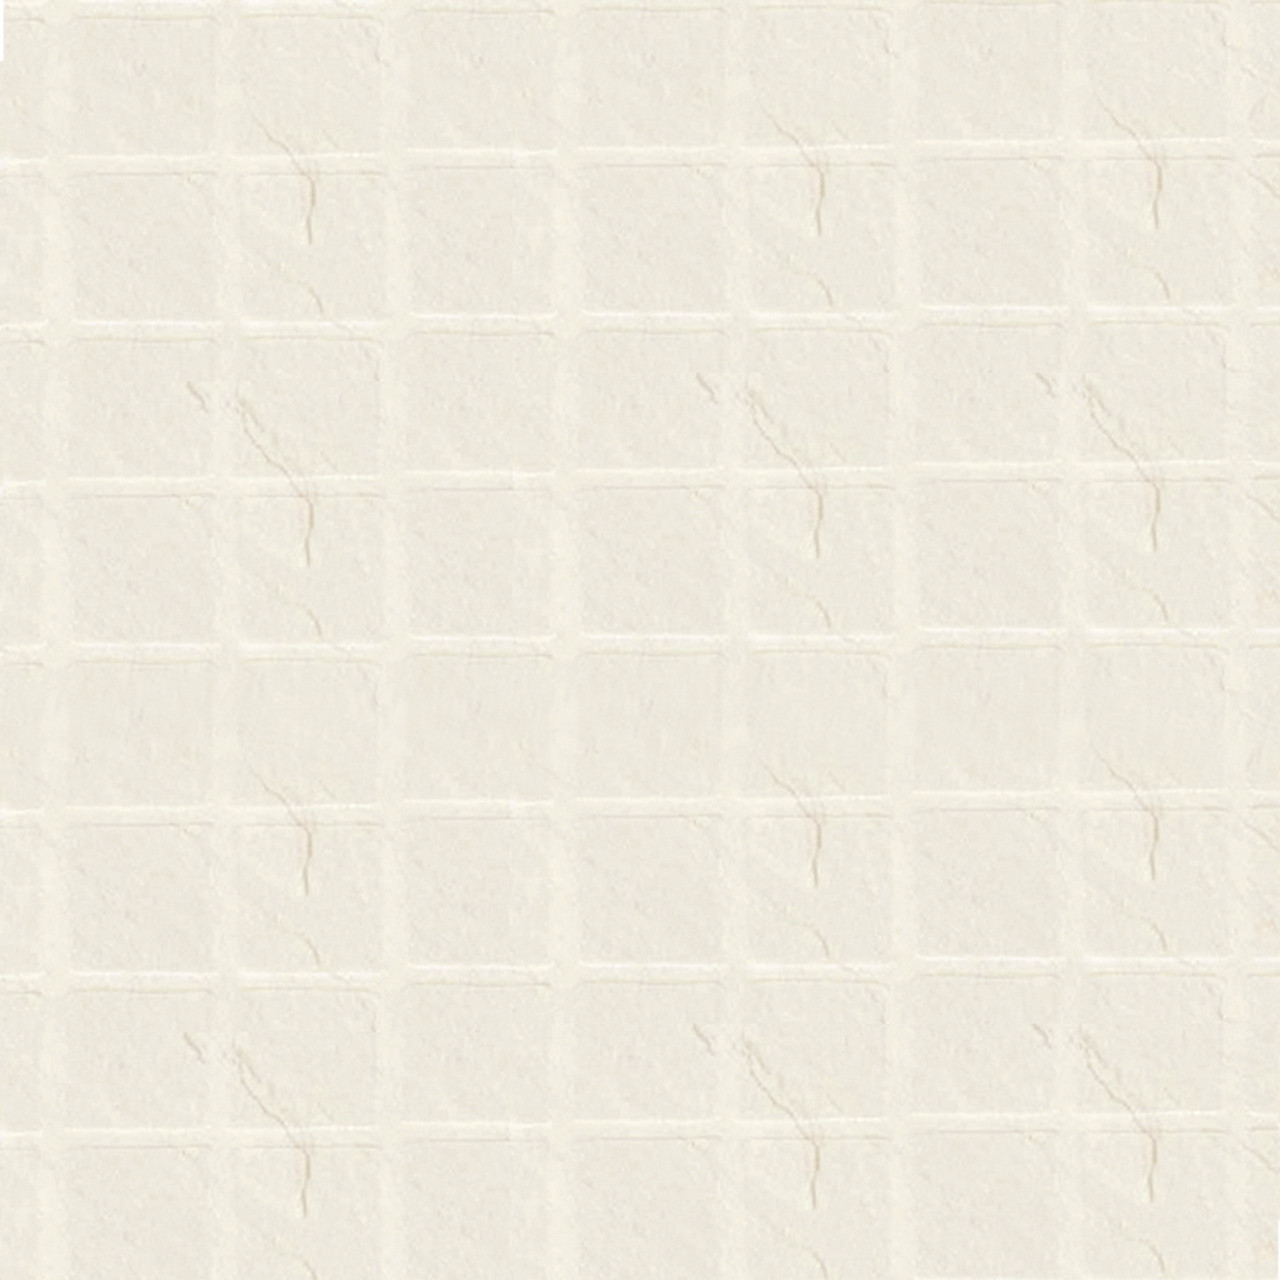 Multipanel White Slate Embossed Tile 2440mm x 1220mm Bathroom Wall Panel